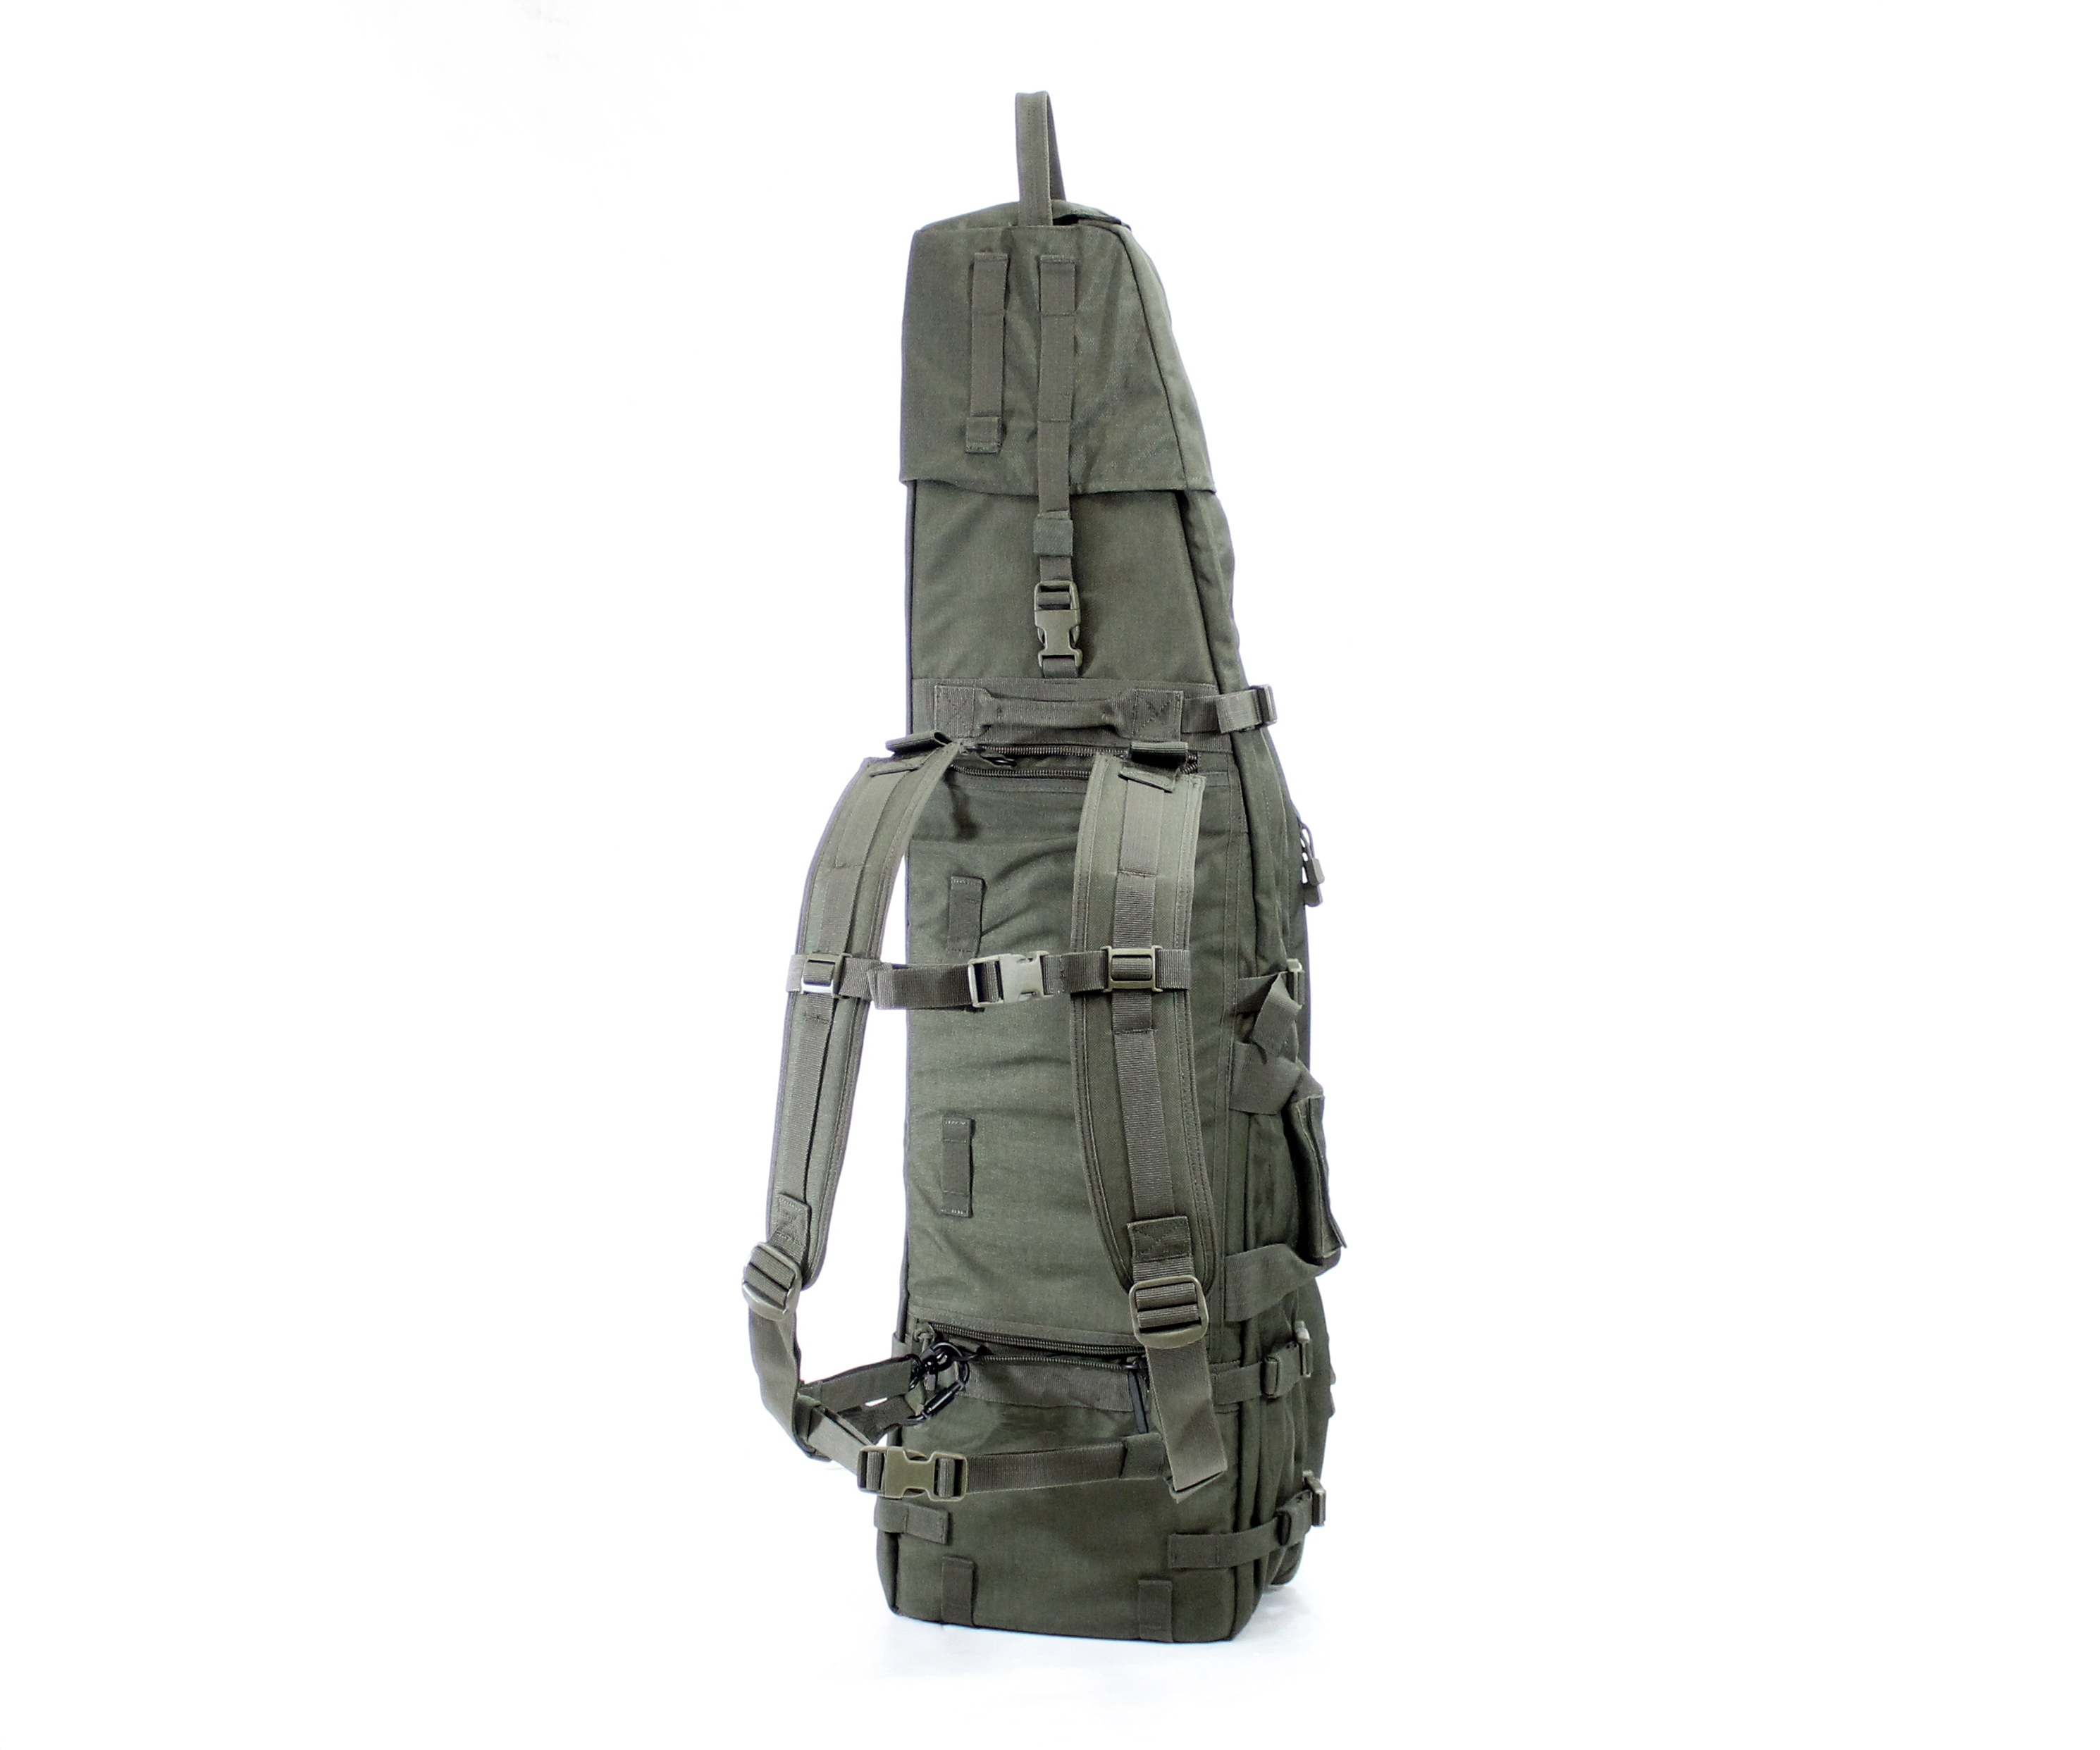 AIM FS-42 Folding Stock Bag